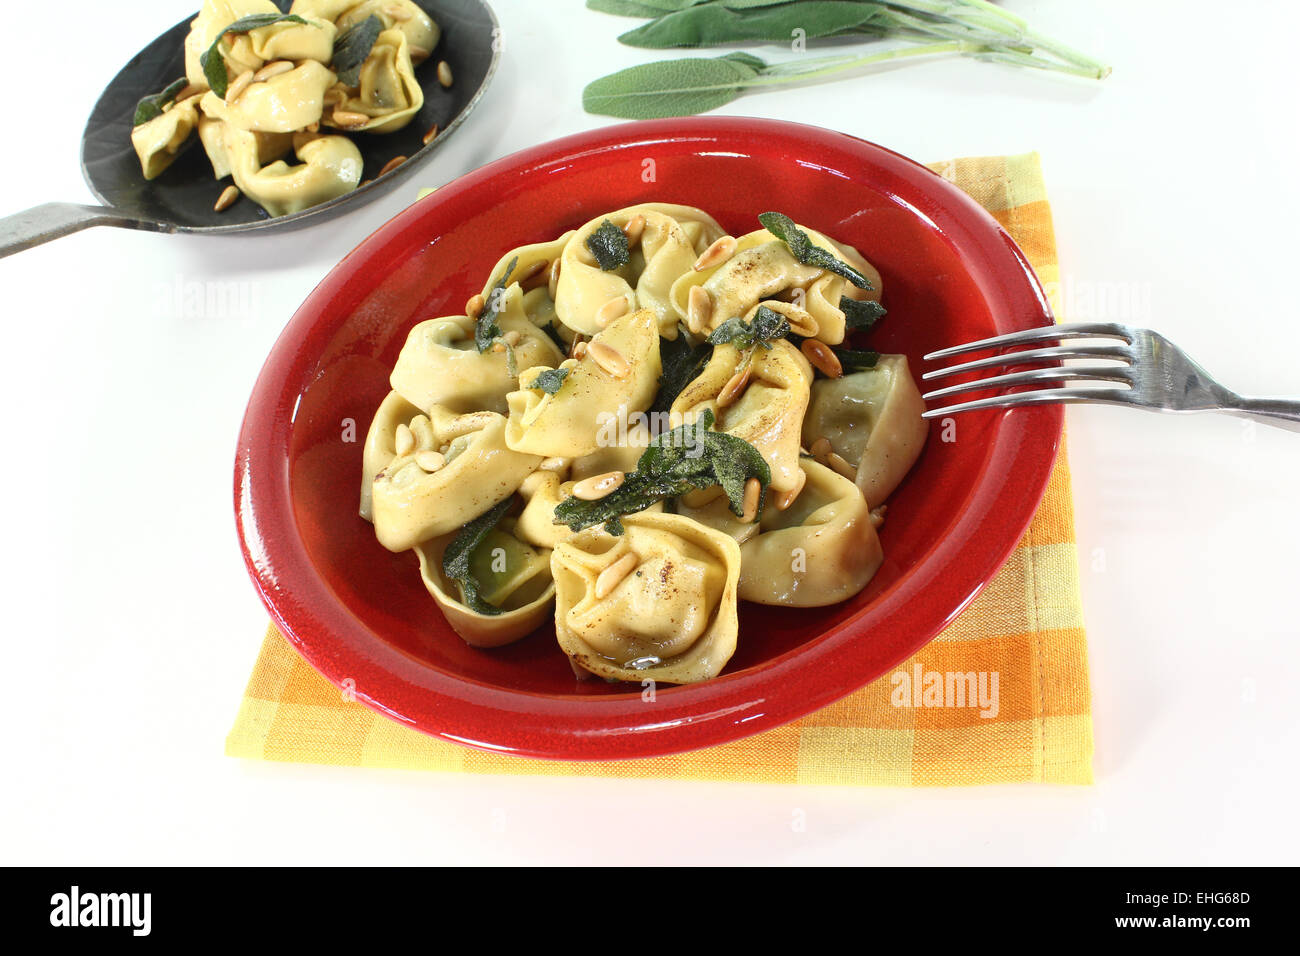 cooked Tortellini with sage butter Stock Photo: 79646797 - Alamy